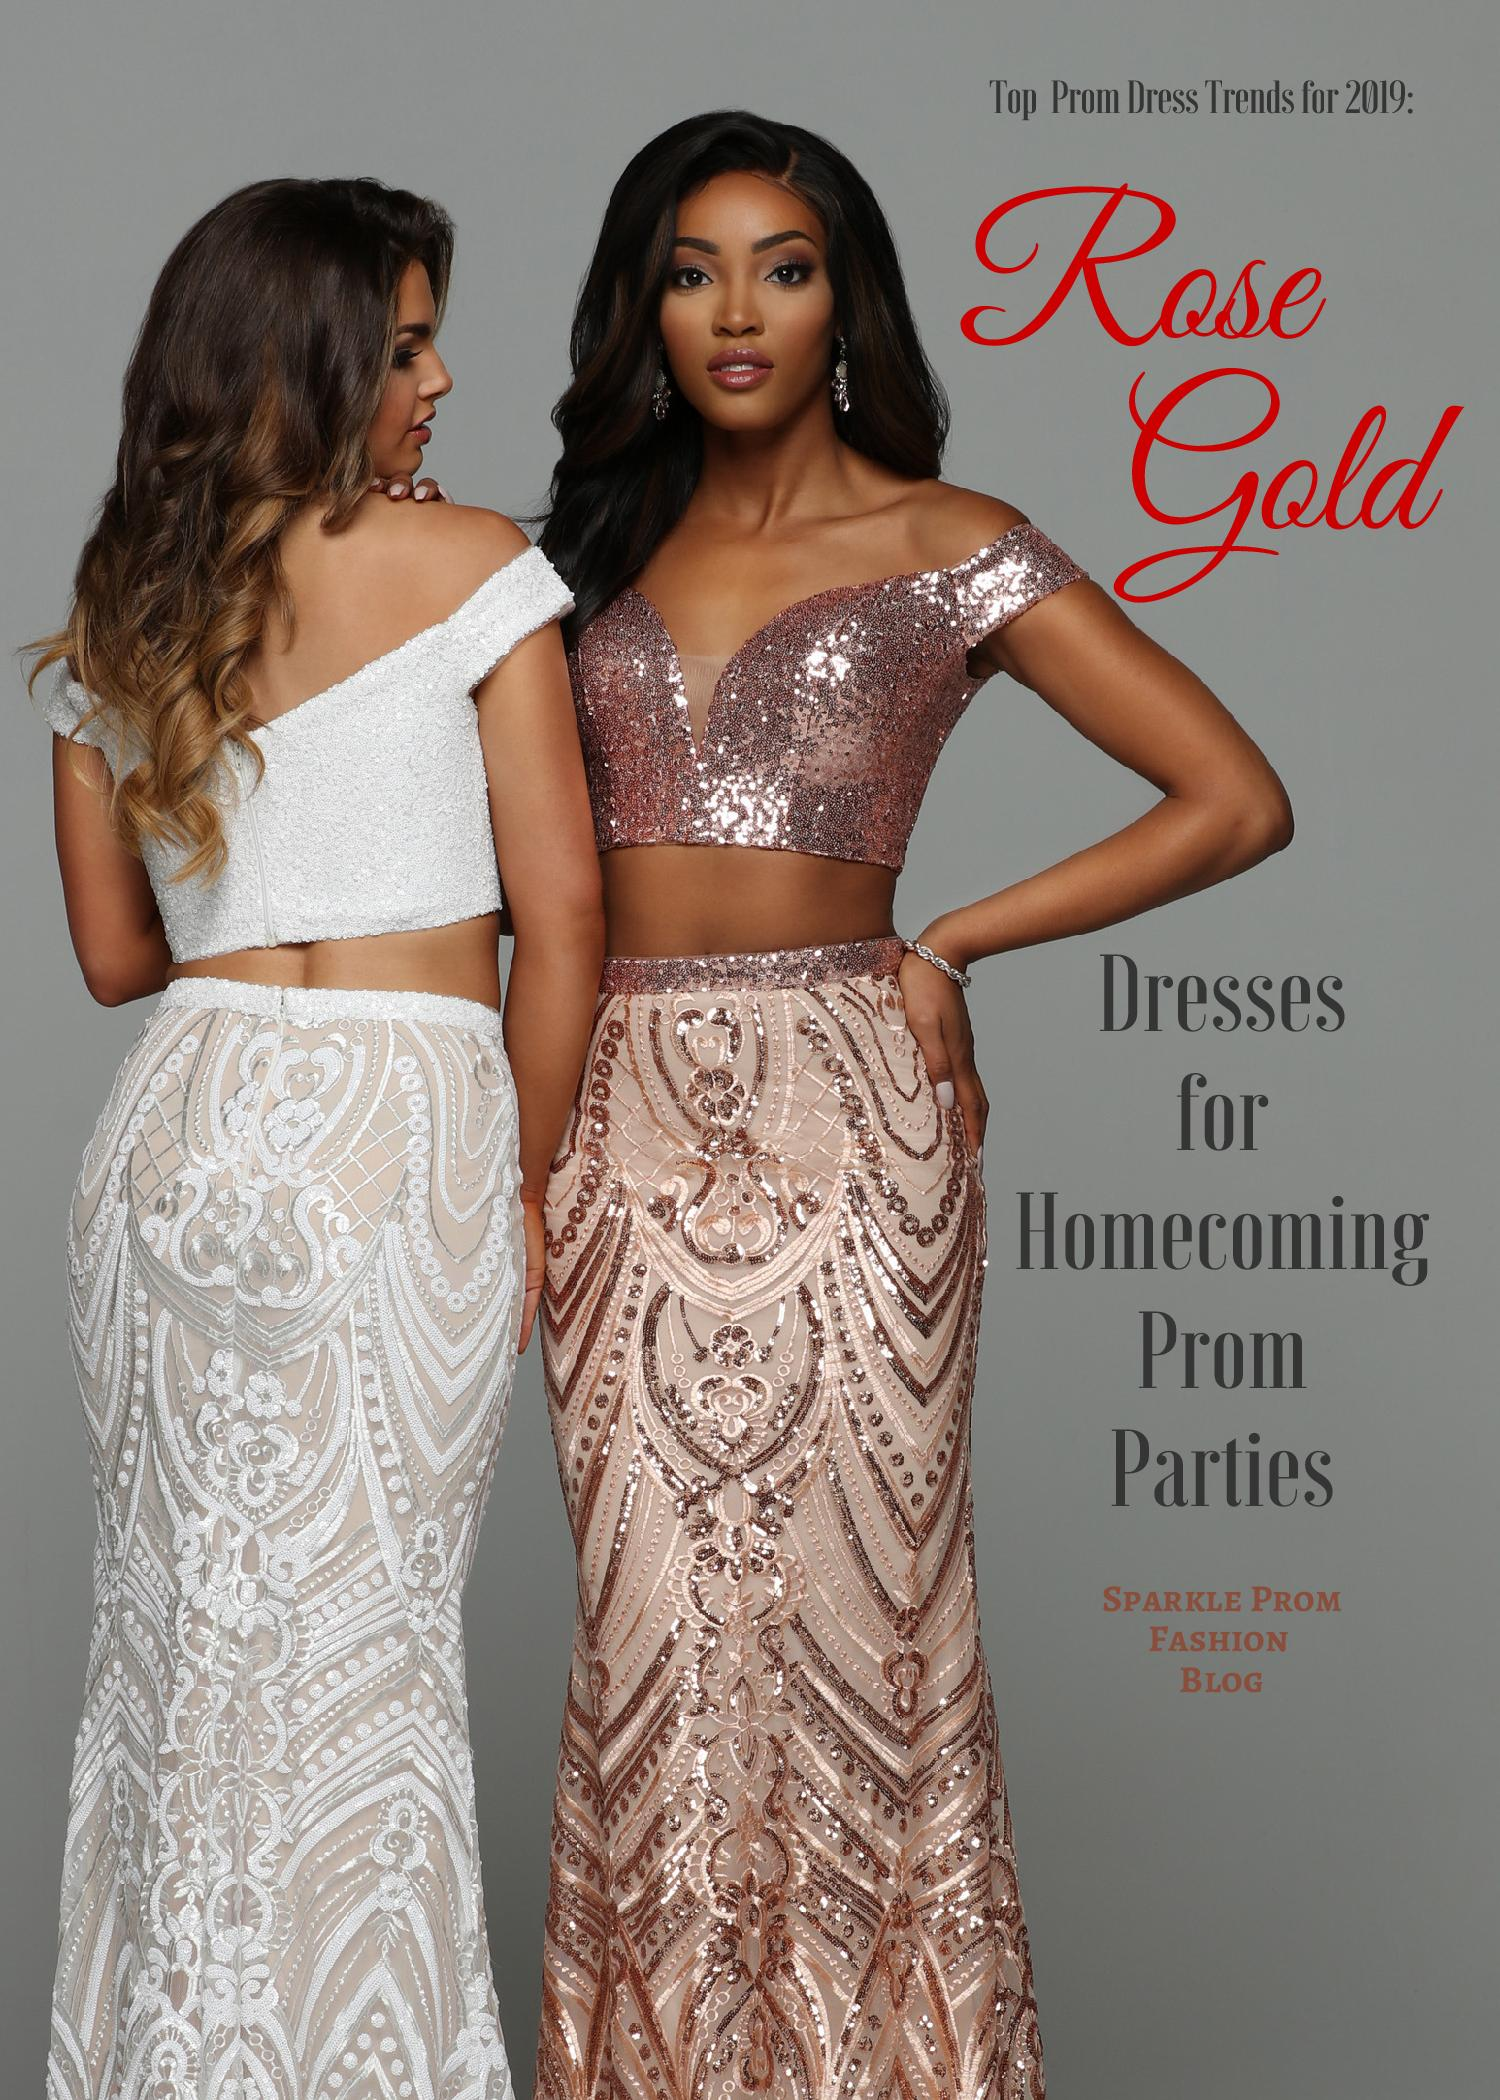 Top Prom Dress Trends for 2019 Rose Gold Prom Dresses – Sparkle Prom Fashion Blog